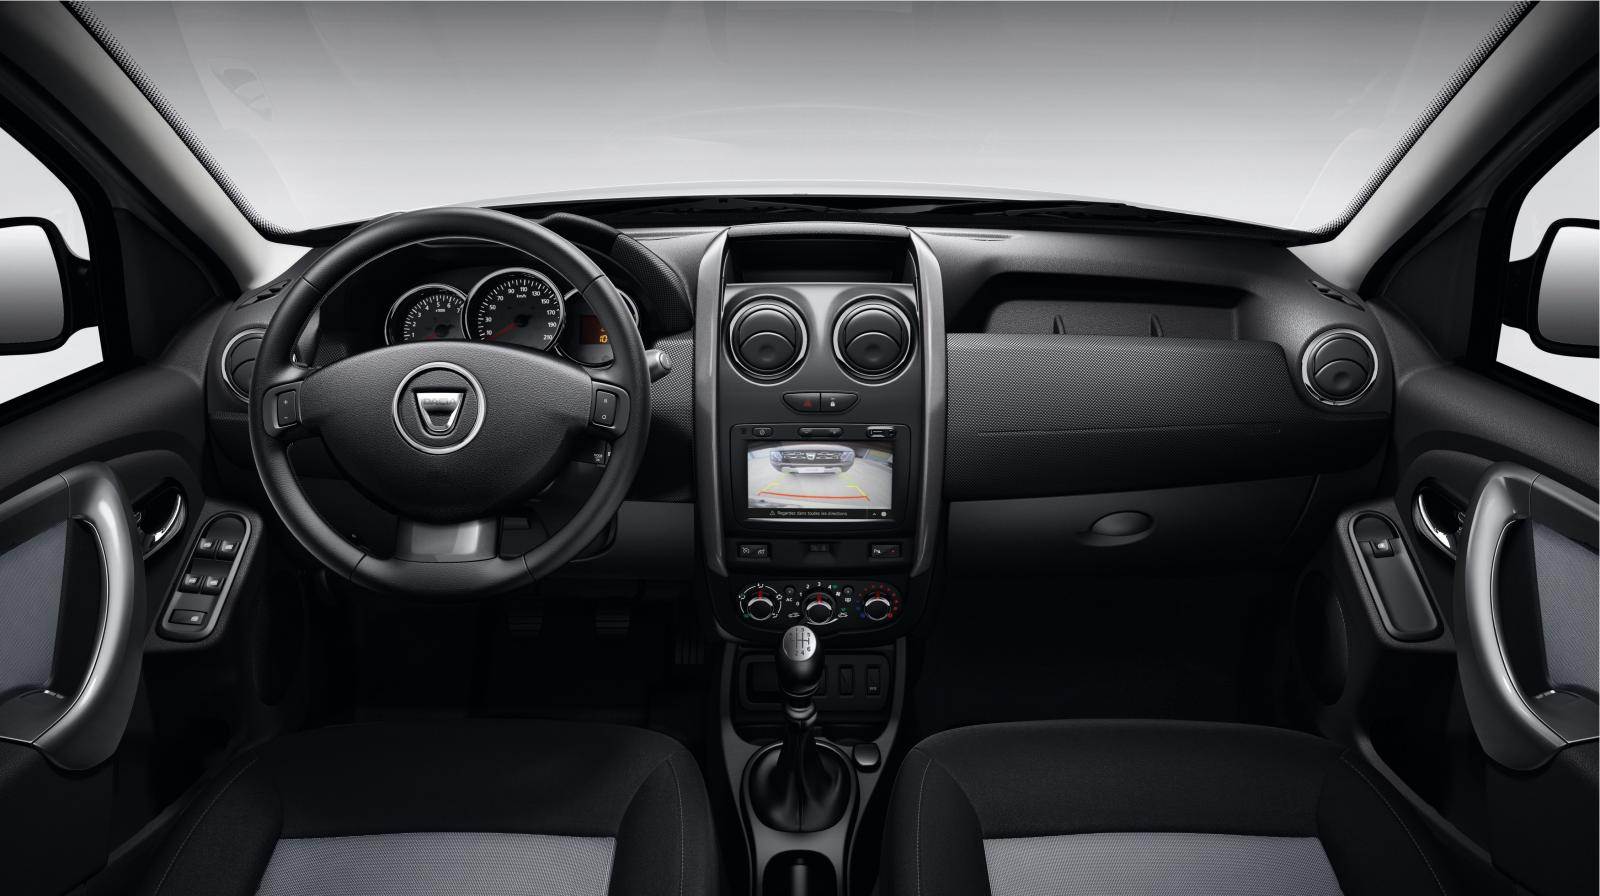 Dacia Announces Logan And Sandero Models With Easy R